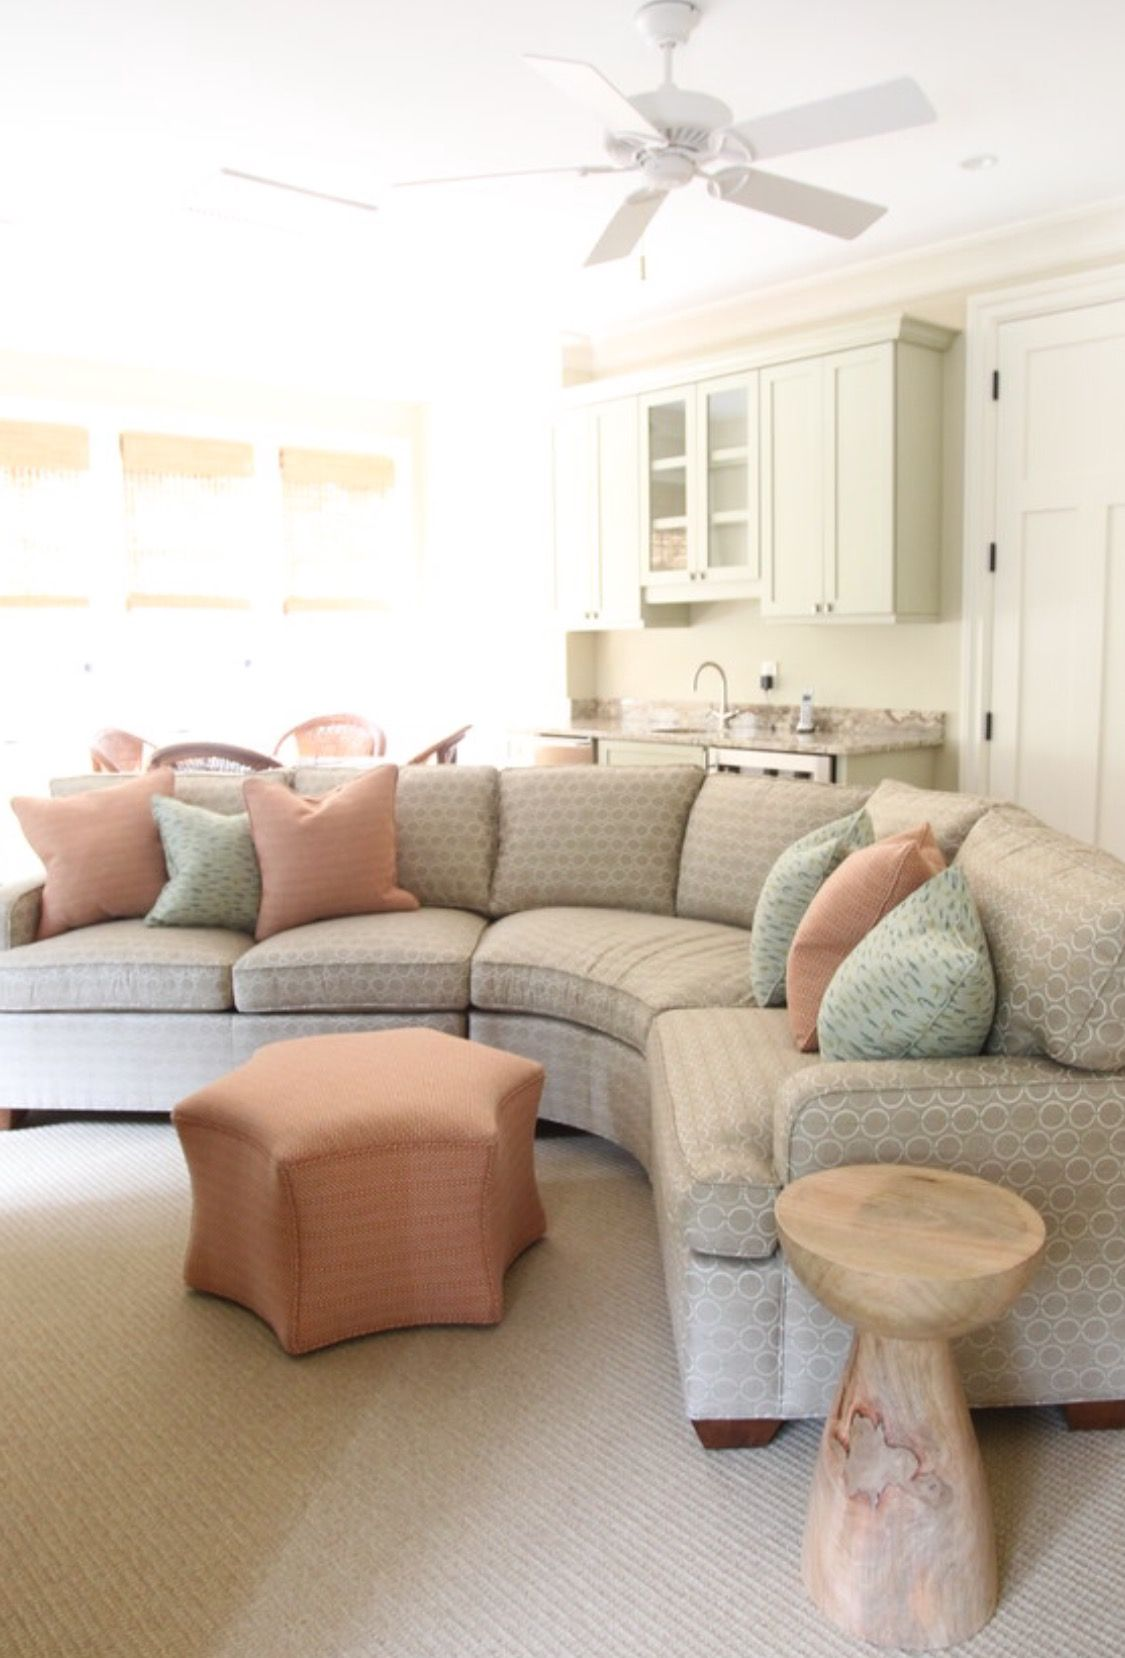 Pin by رجاء ربي on Home decor   Pinterest   Living rooms, Walls and Room